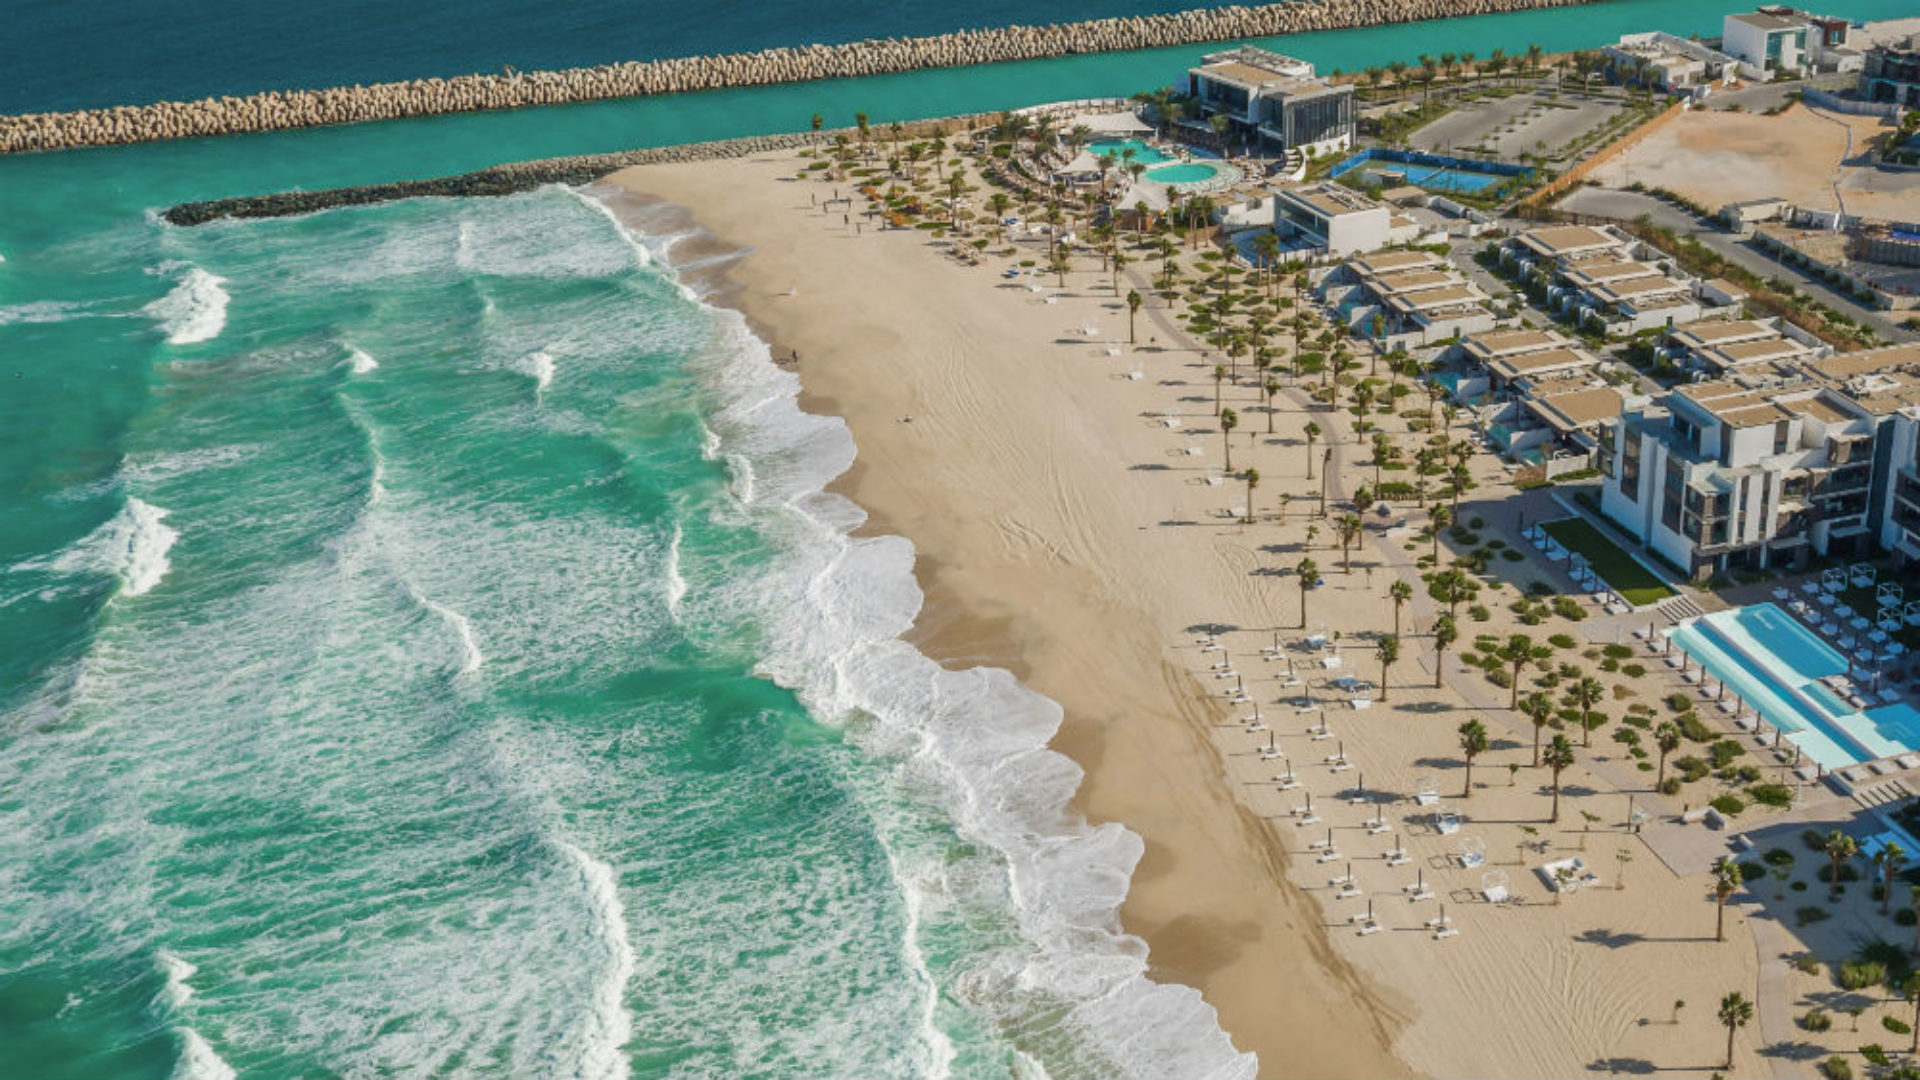 Aerial view of the beach at Nikki Beach Resort & Spa